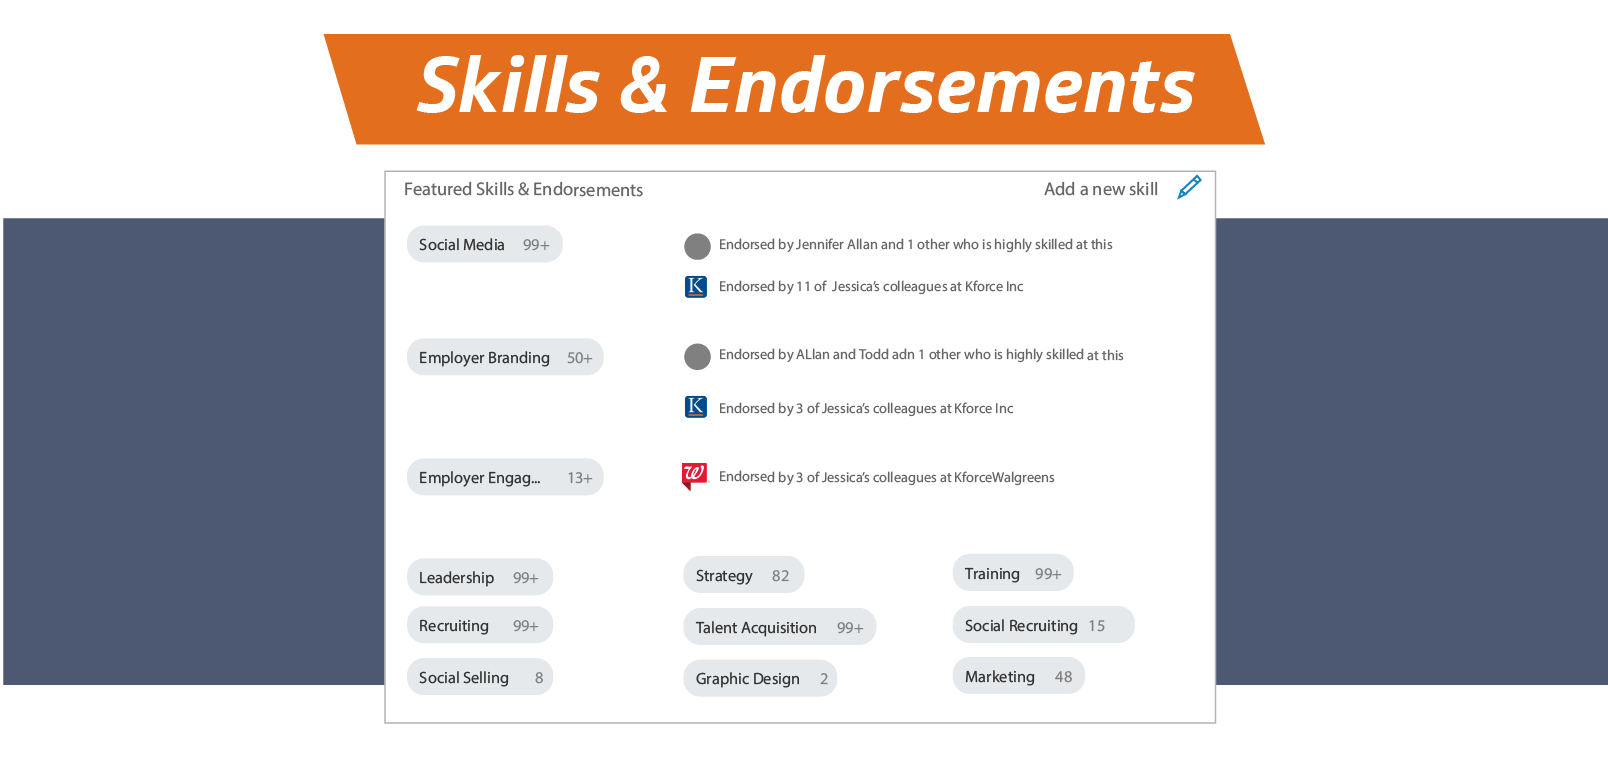 LinkedIn Tips for skills and endorsements